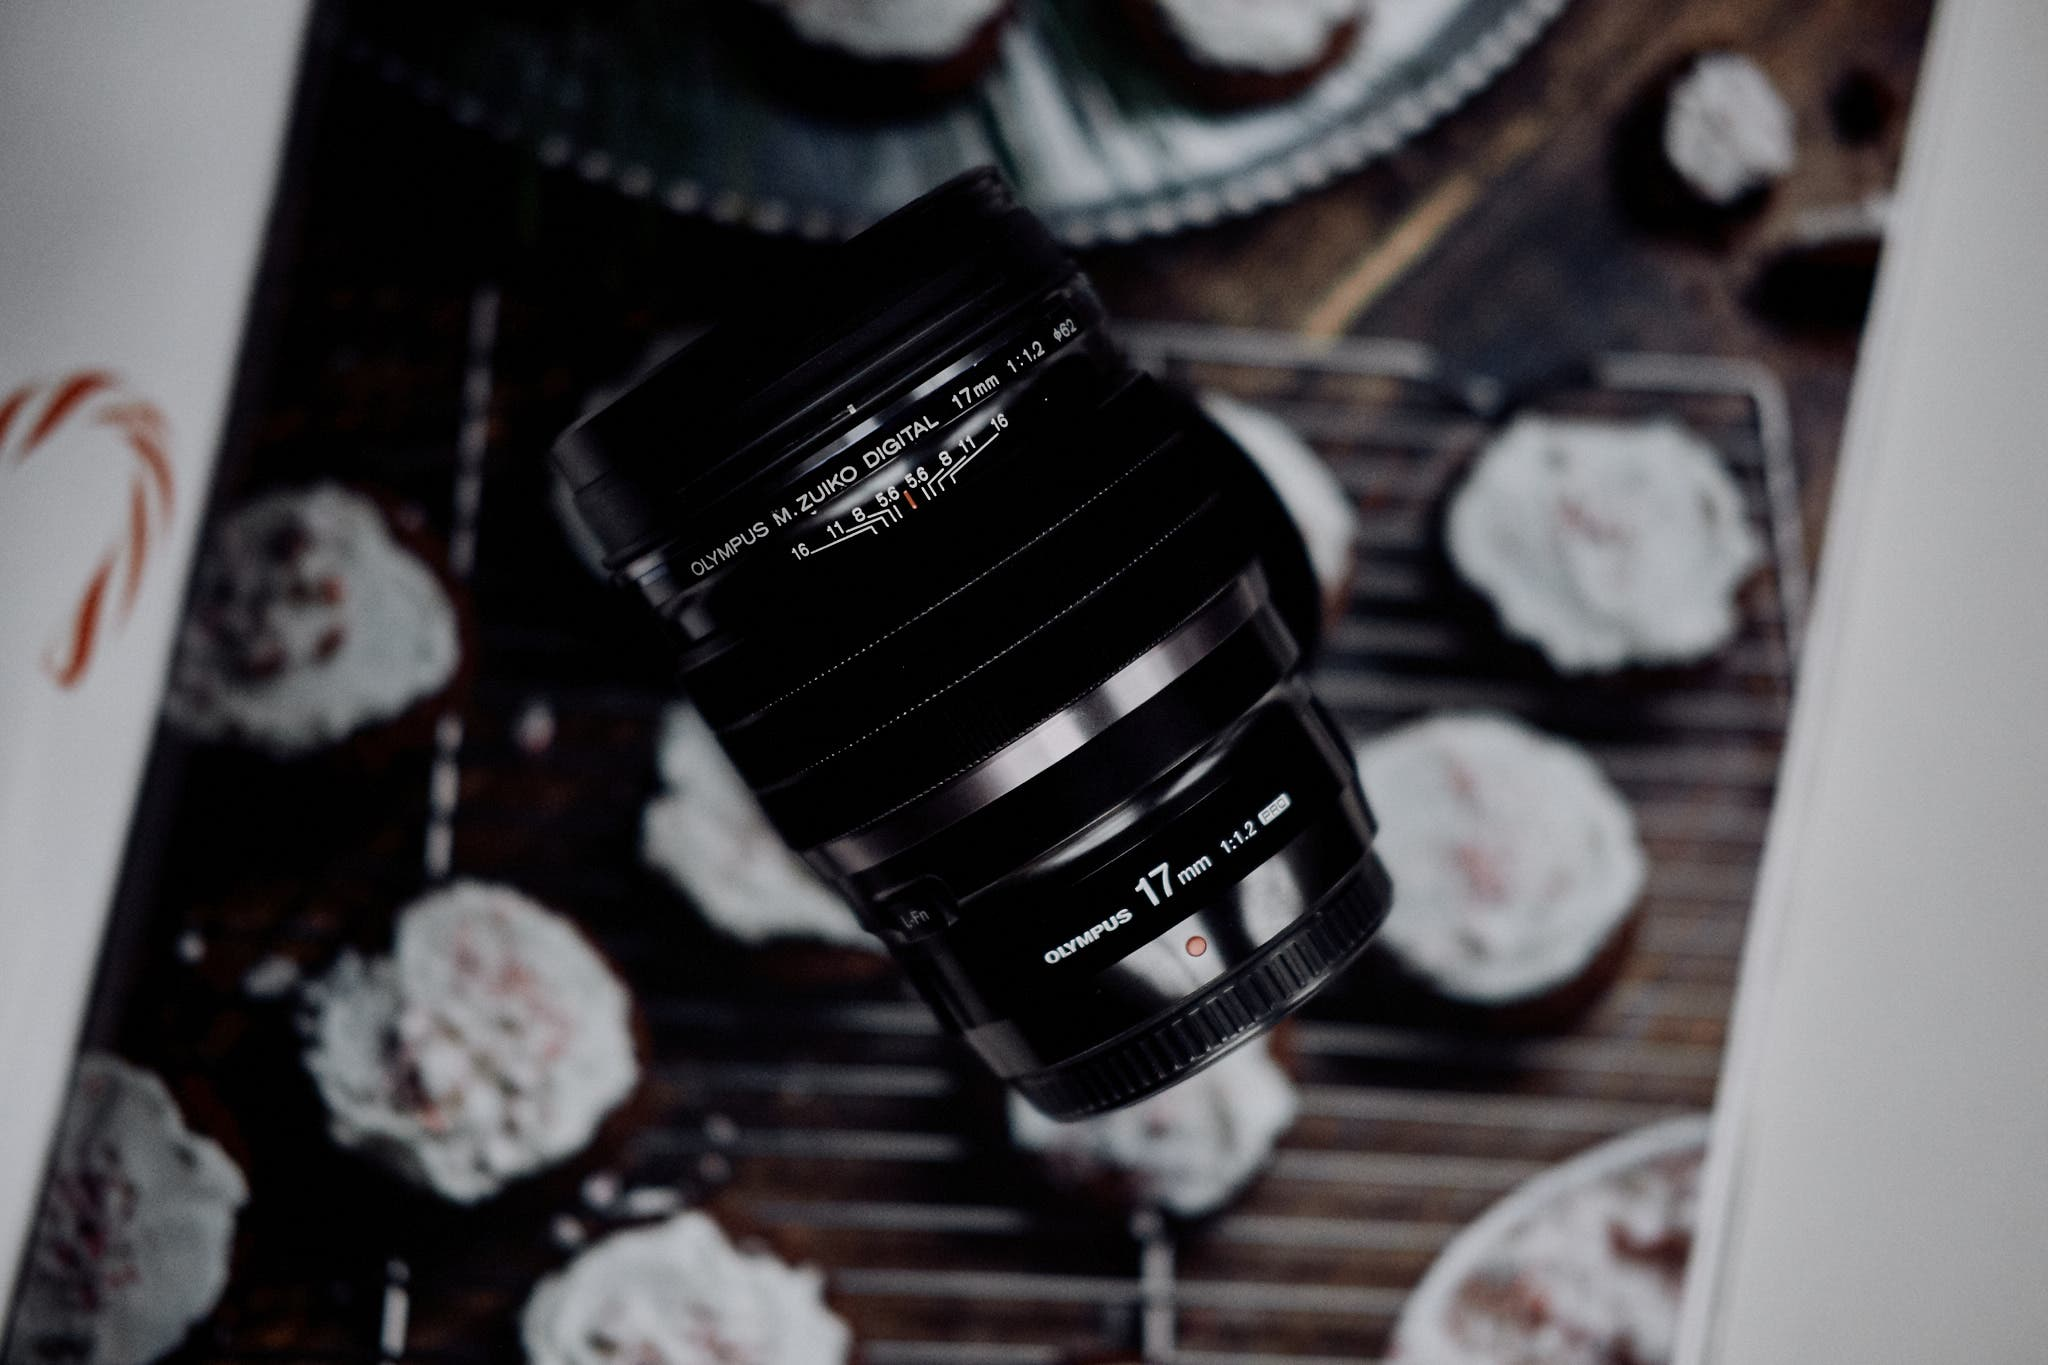 REVIEW: Olympus 17mm F1.2 PRO (Micro Four Thirds)